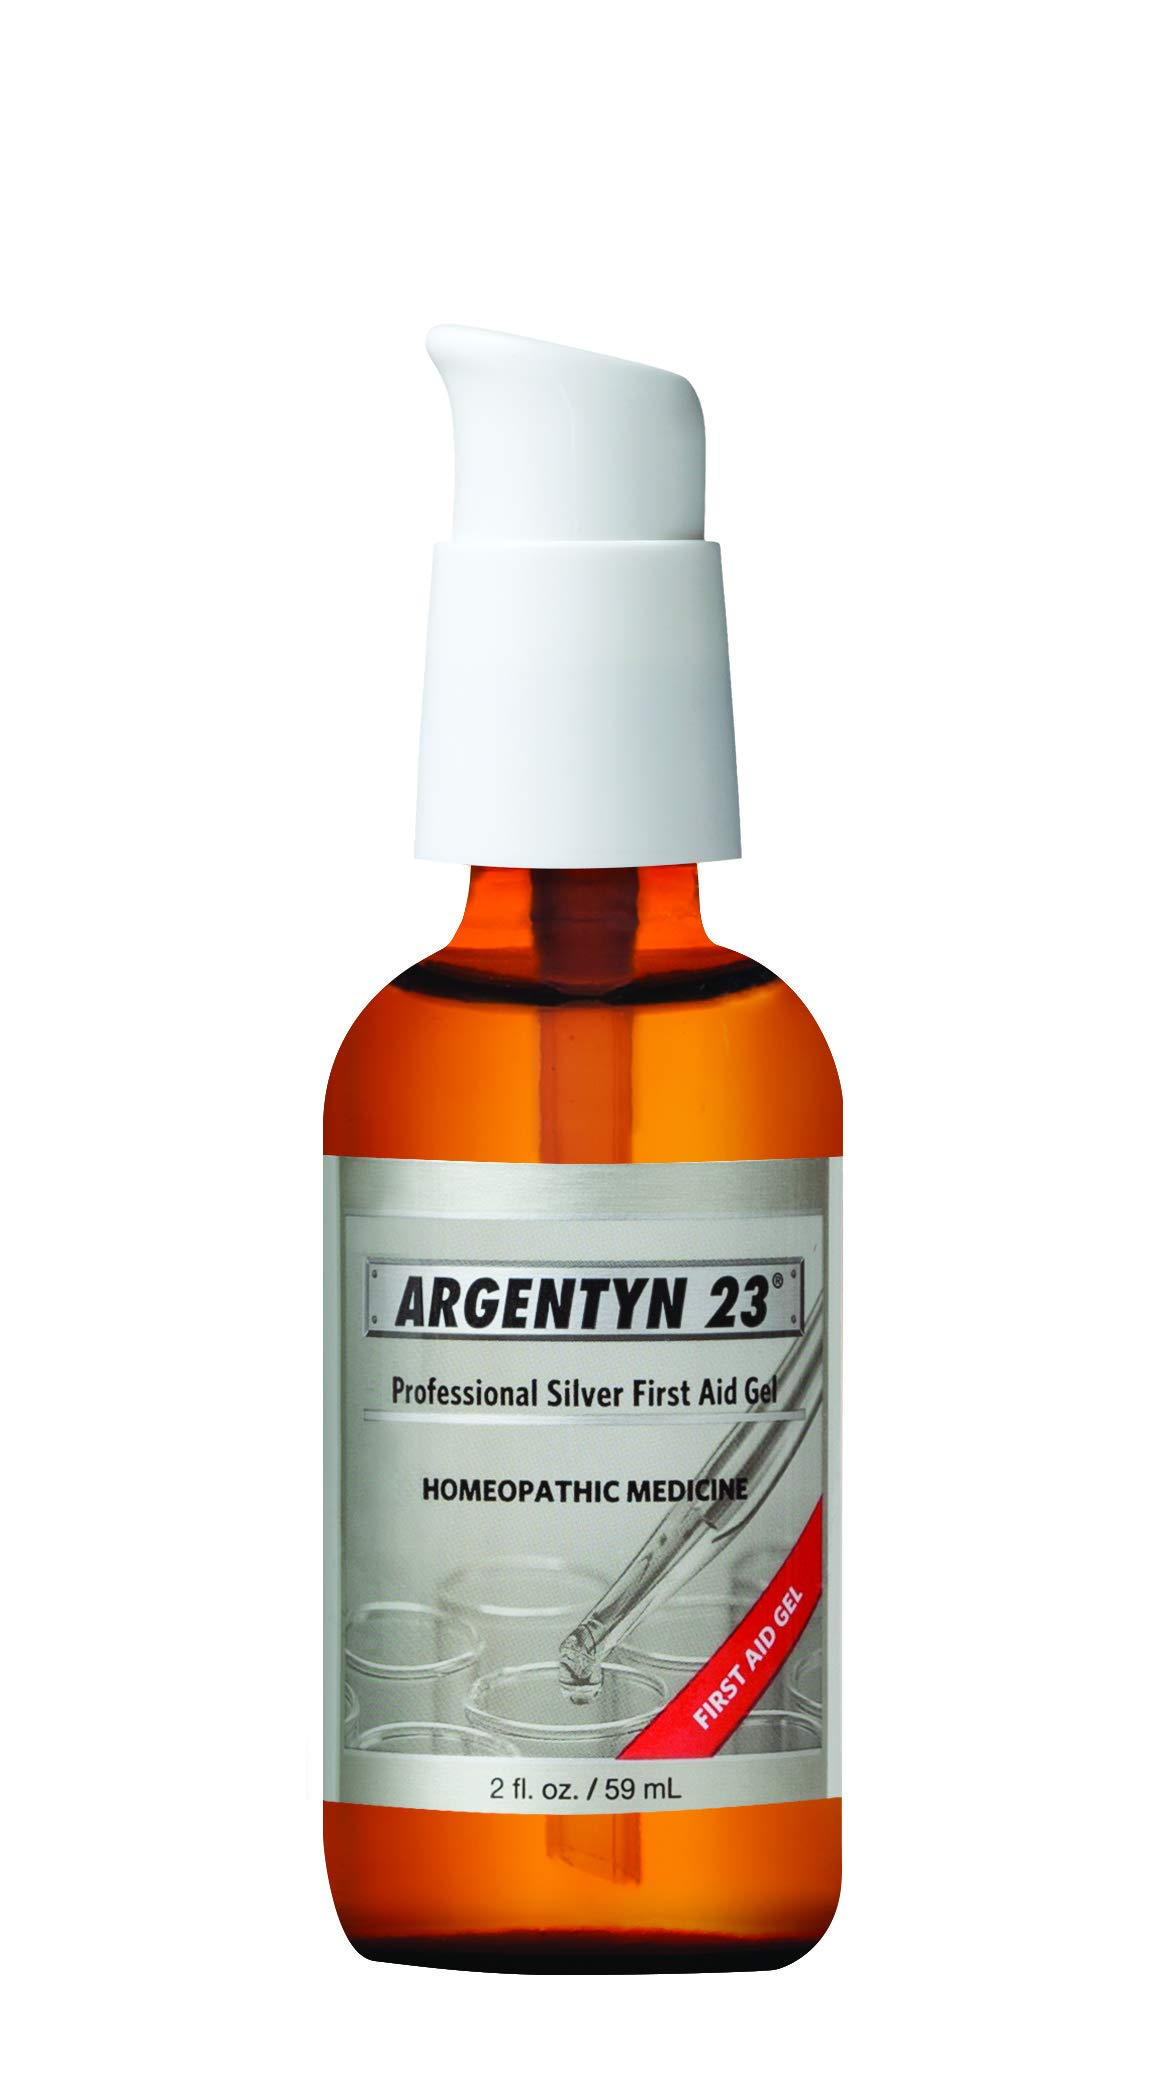 Argentyn 23® Professional Silver First Aid Gel - 2 oz. (59 mL) Bottle - Homeopathic Medicine for Topical Use by Argentyn 23